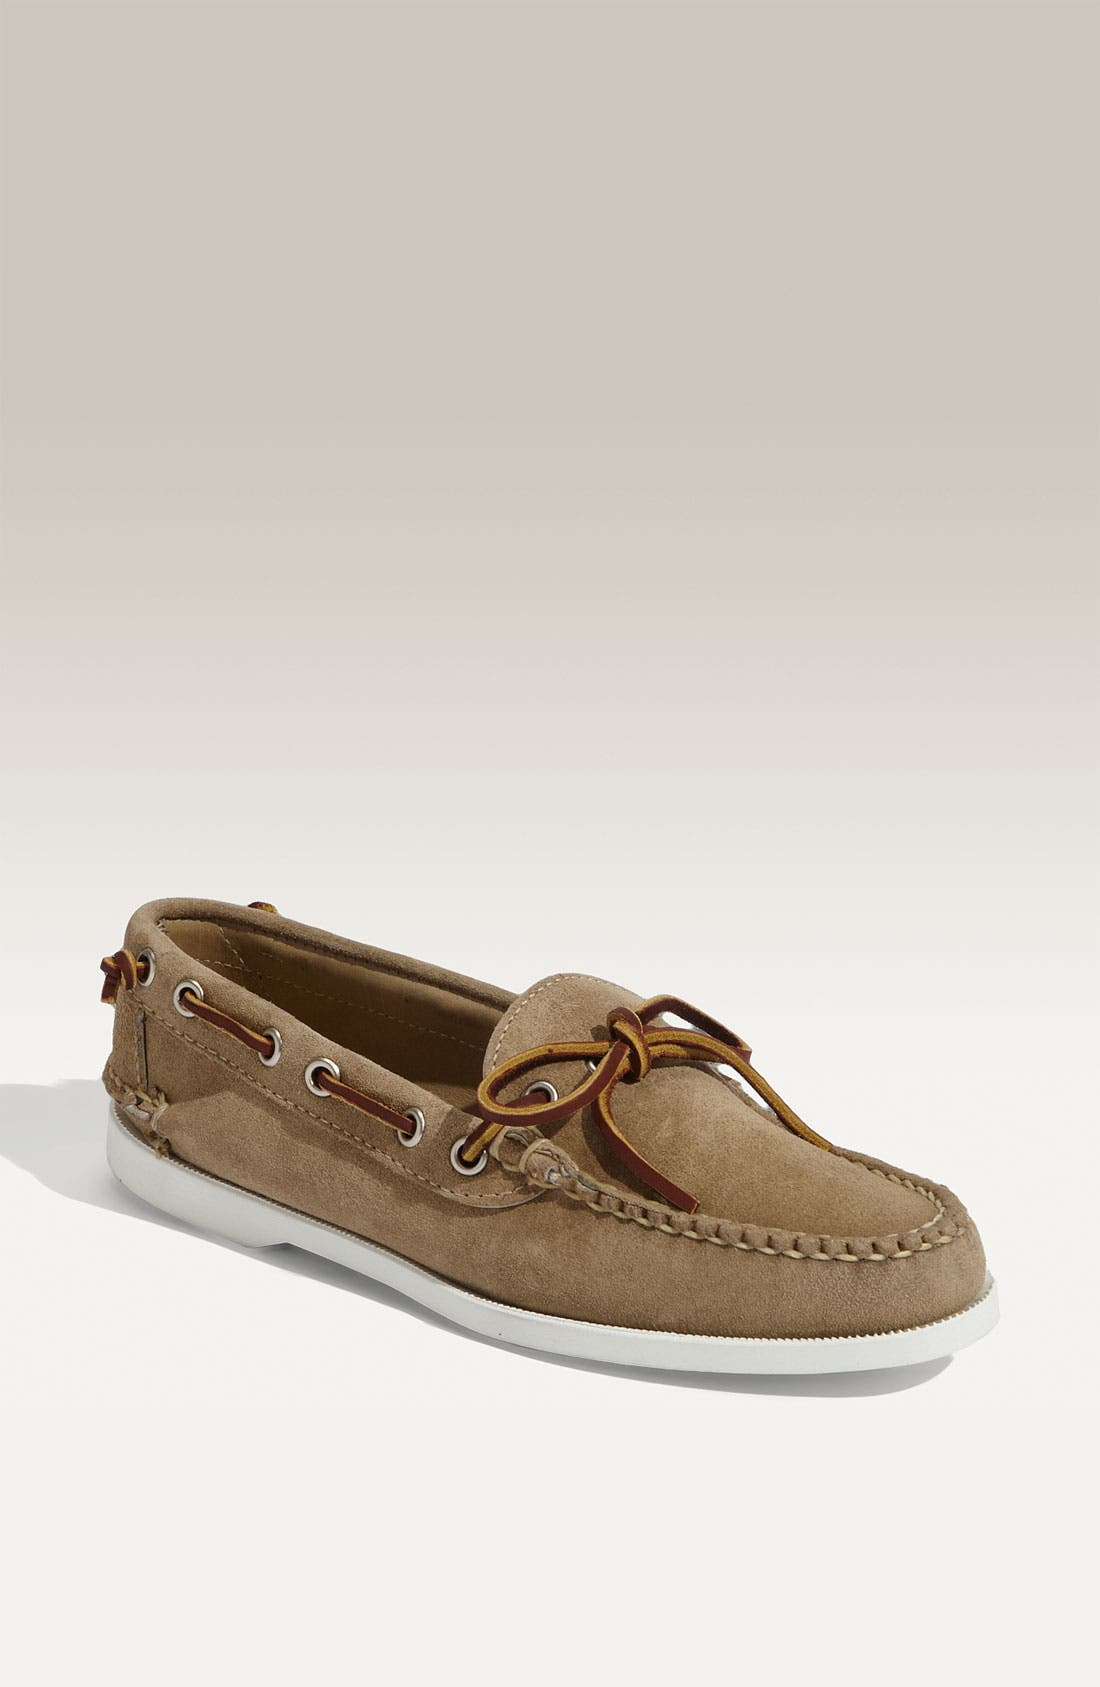 Main Image - Ralph Lauren Collection 'Theodora' Boat Shoe